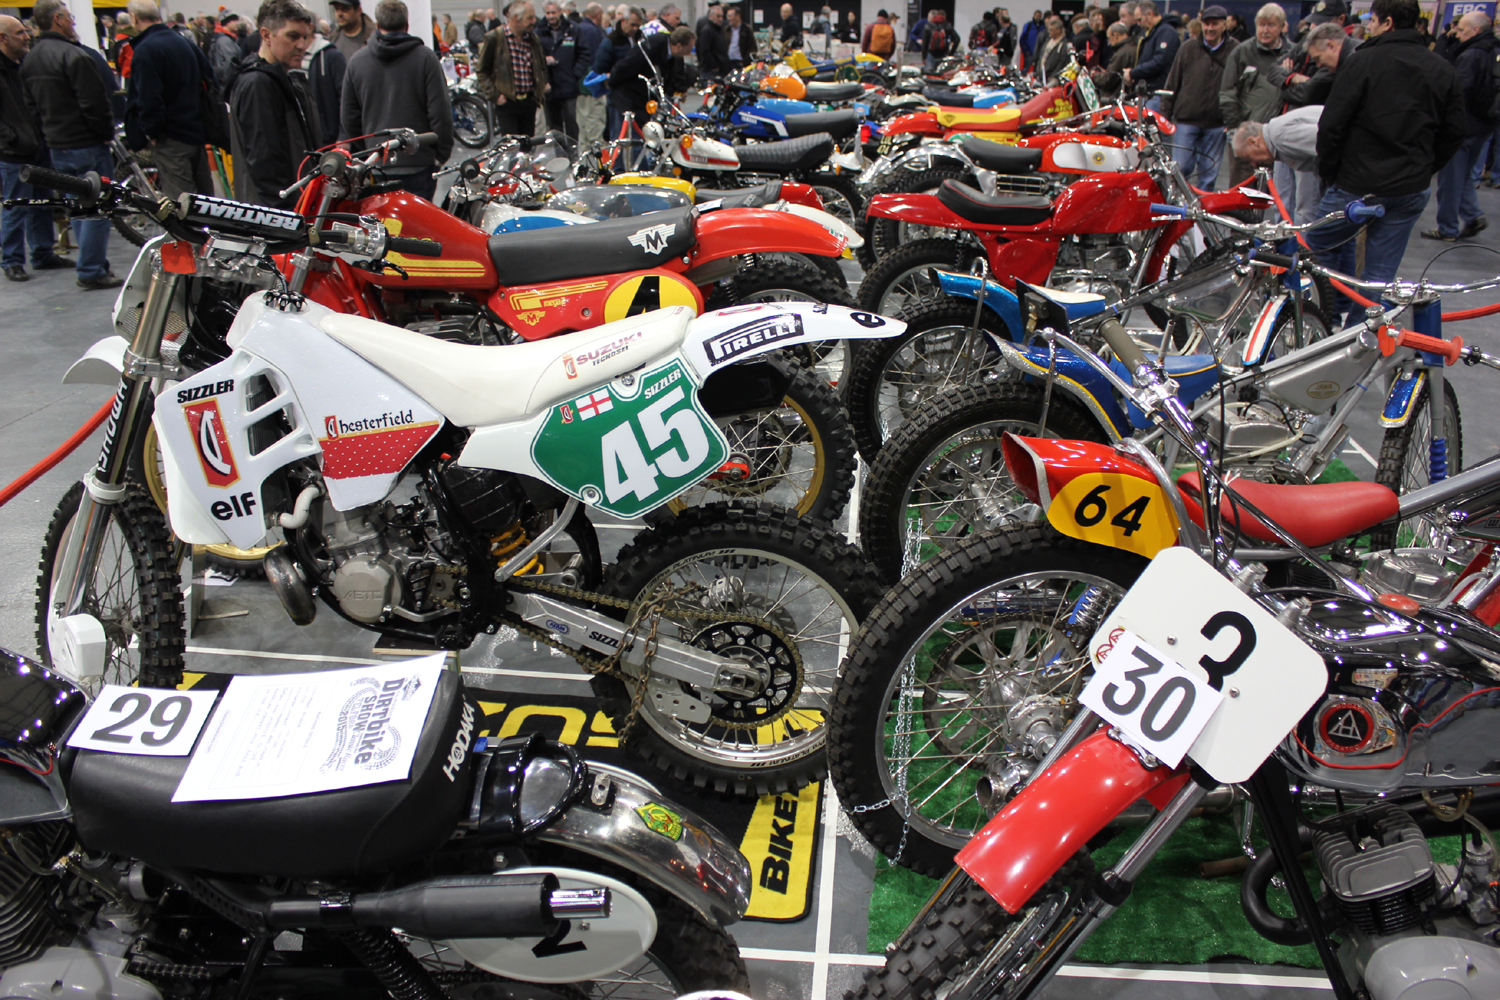 classicdirtbikerider.com-photo by Mr J-2015 Telford classic dirt bike show-4